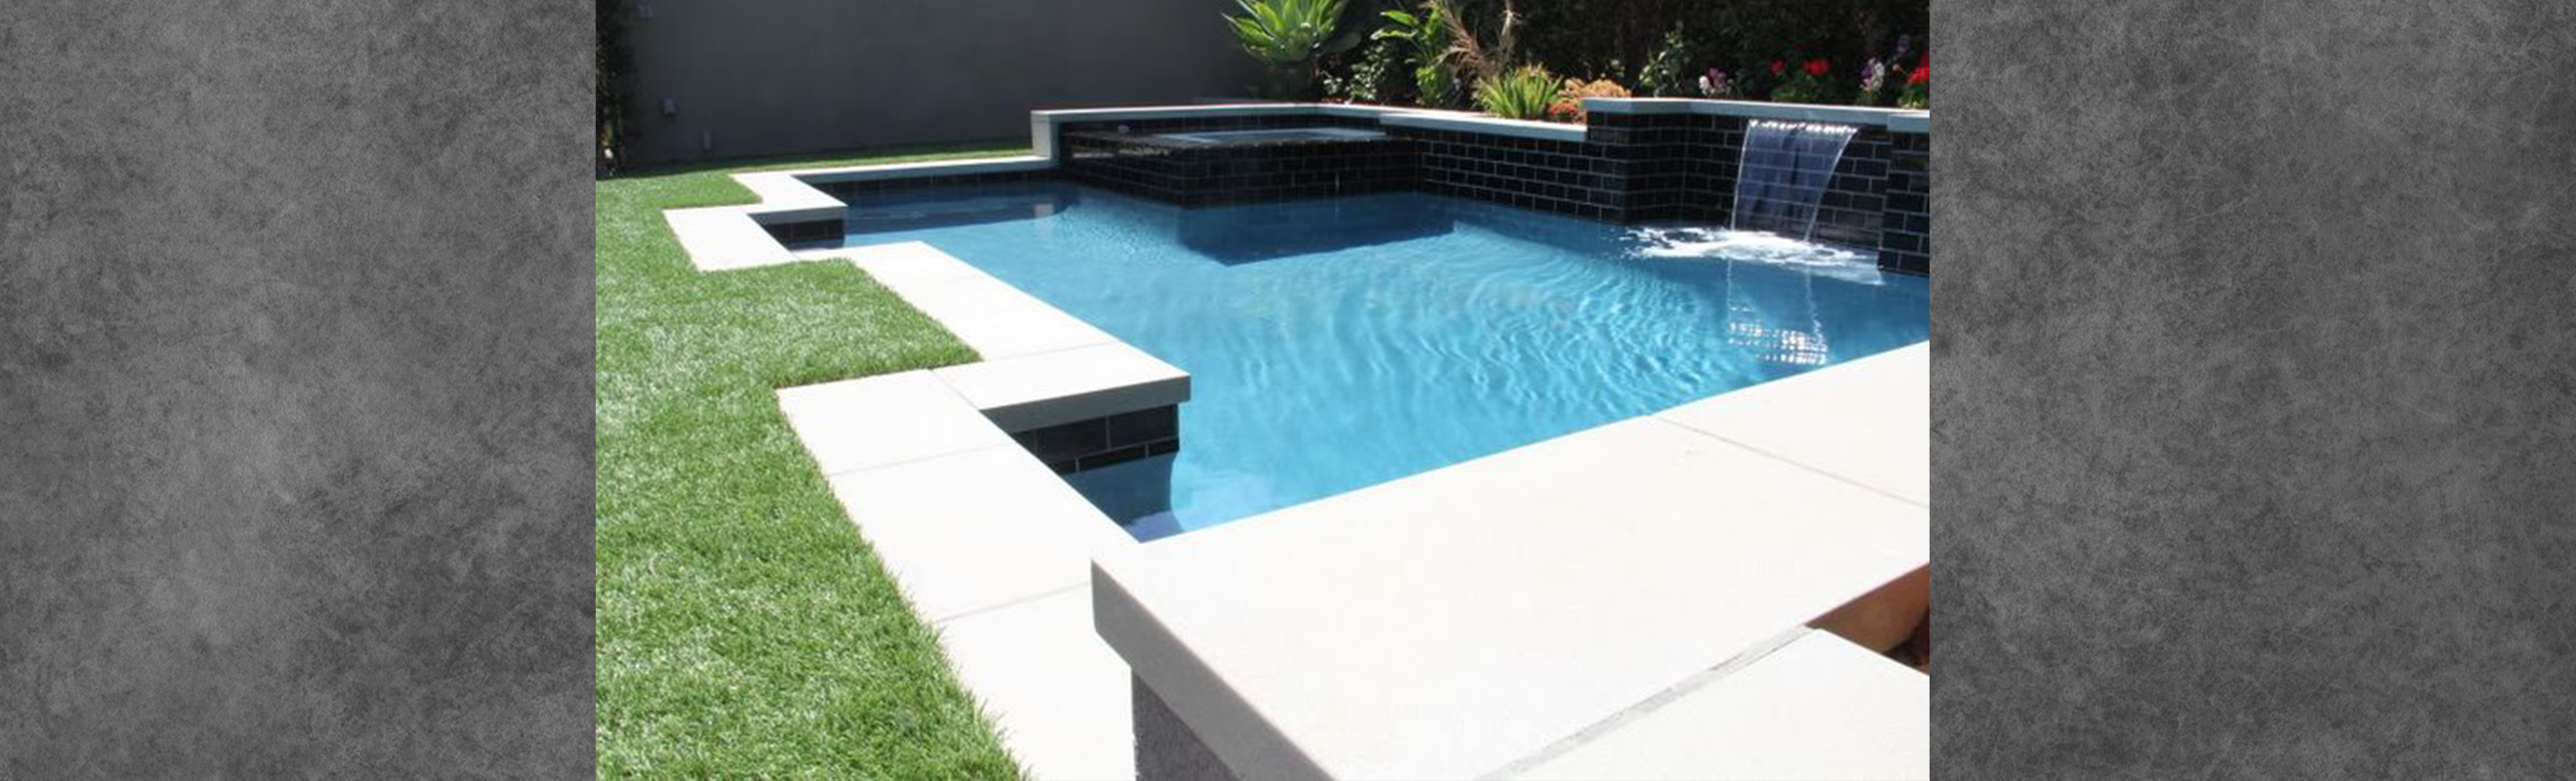 pool coping | ultramix concrete products